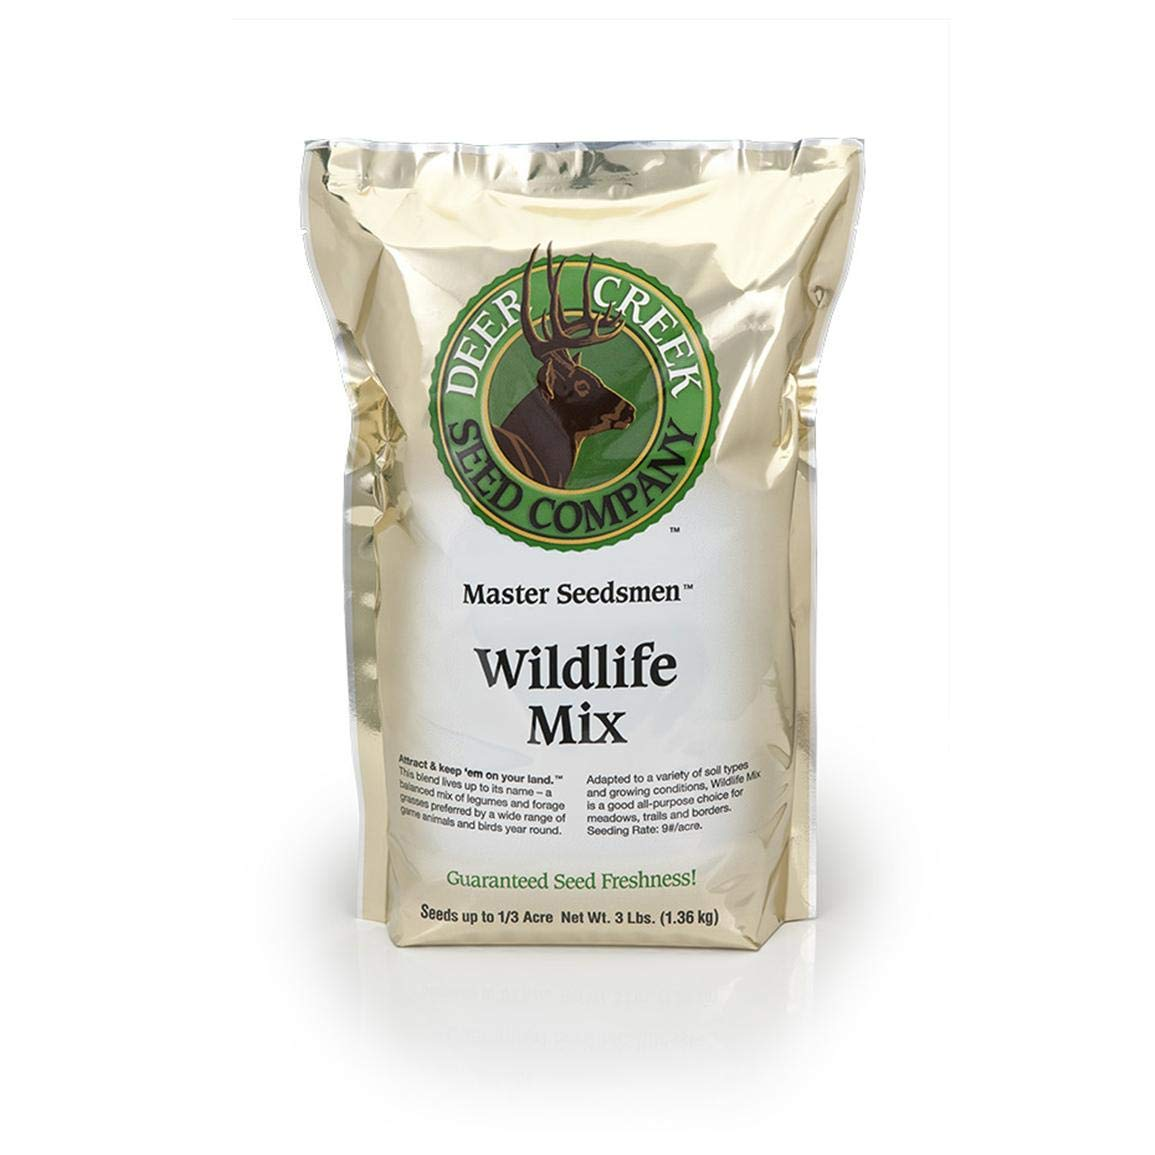 Wildlife Clover Food Plot Mix